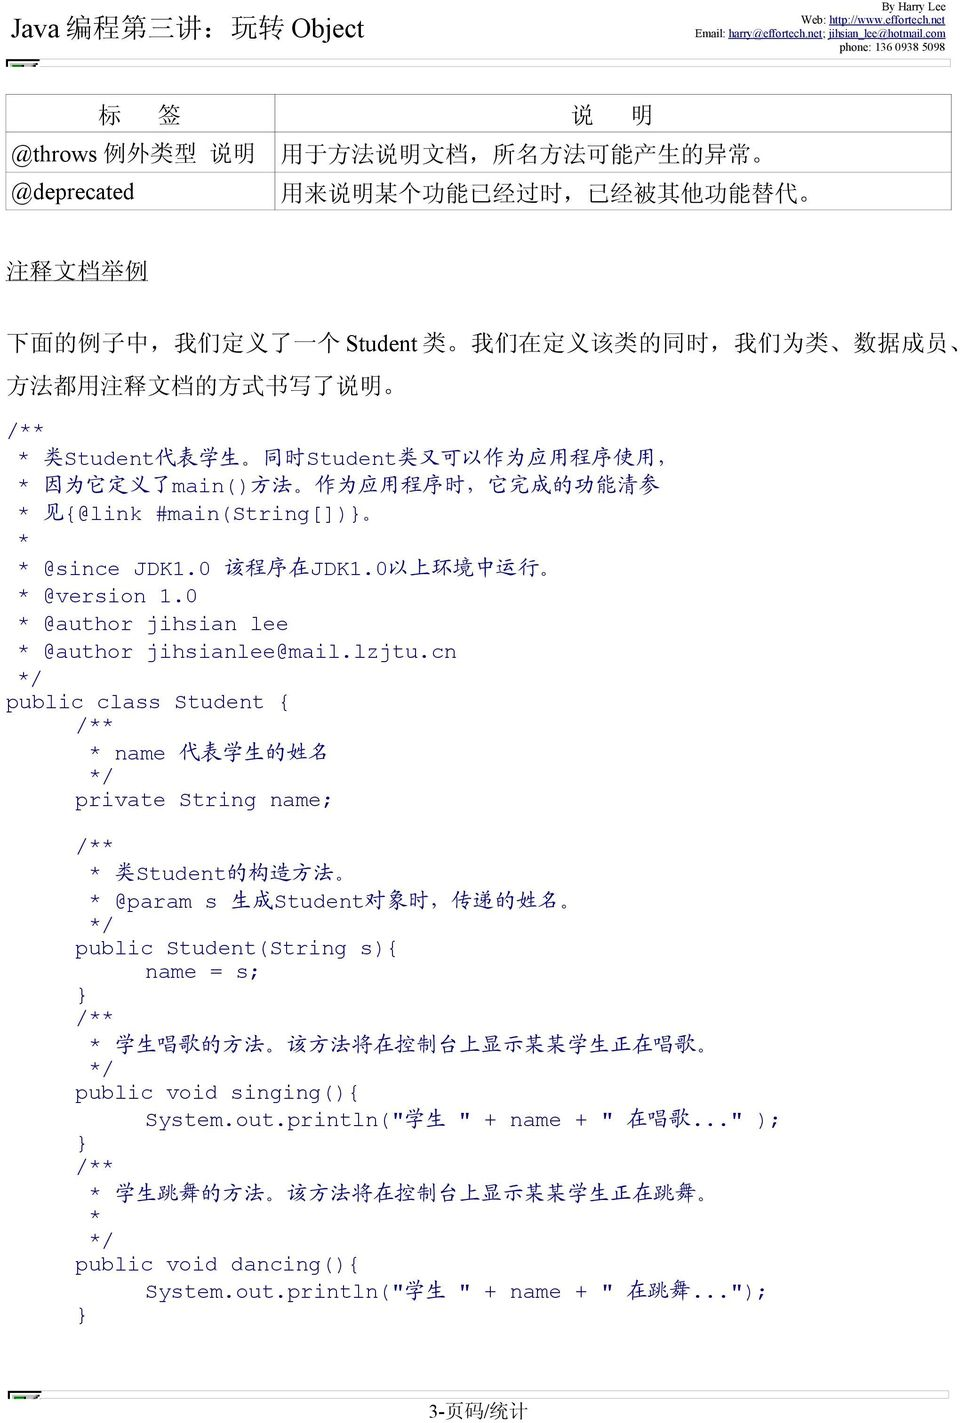 0 该 程 序 在 JDK1.0 以 上 环 境 中 运 行 * @version 1.0 * @author jihsian lee * @author jihsianlee@mail.lzjtu.